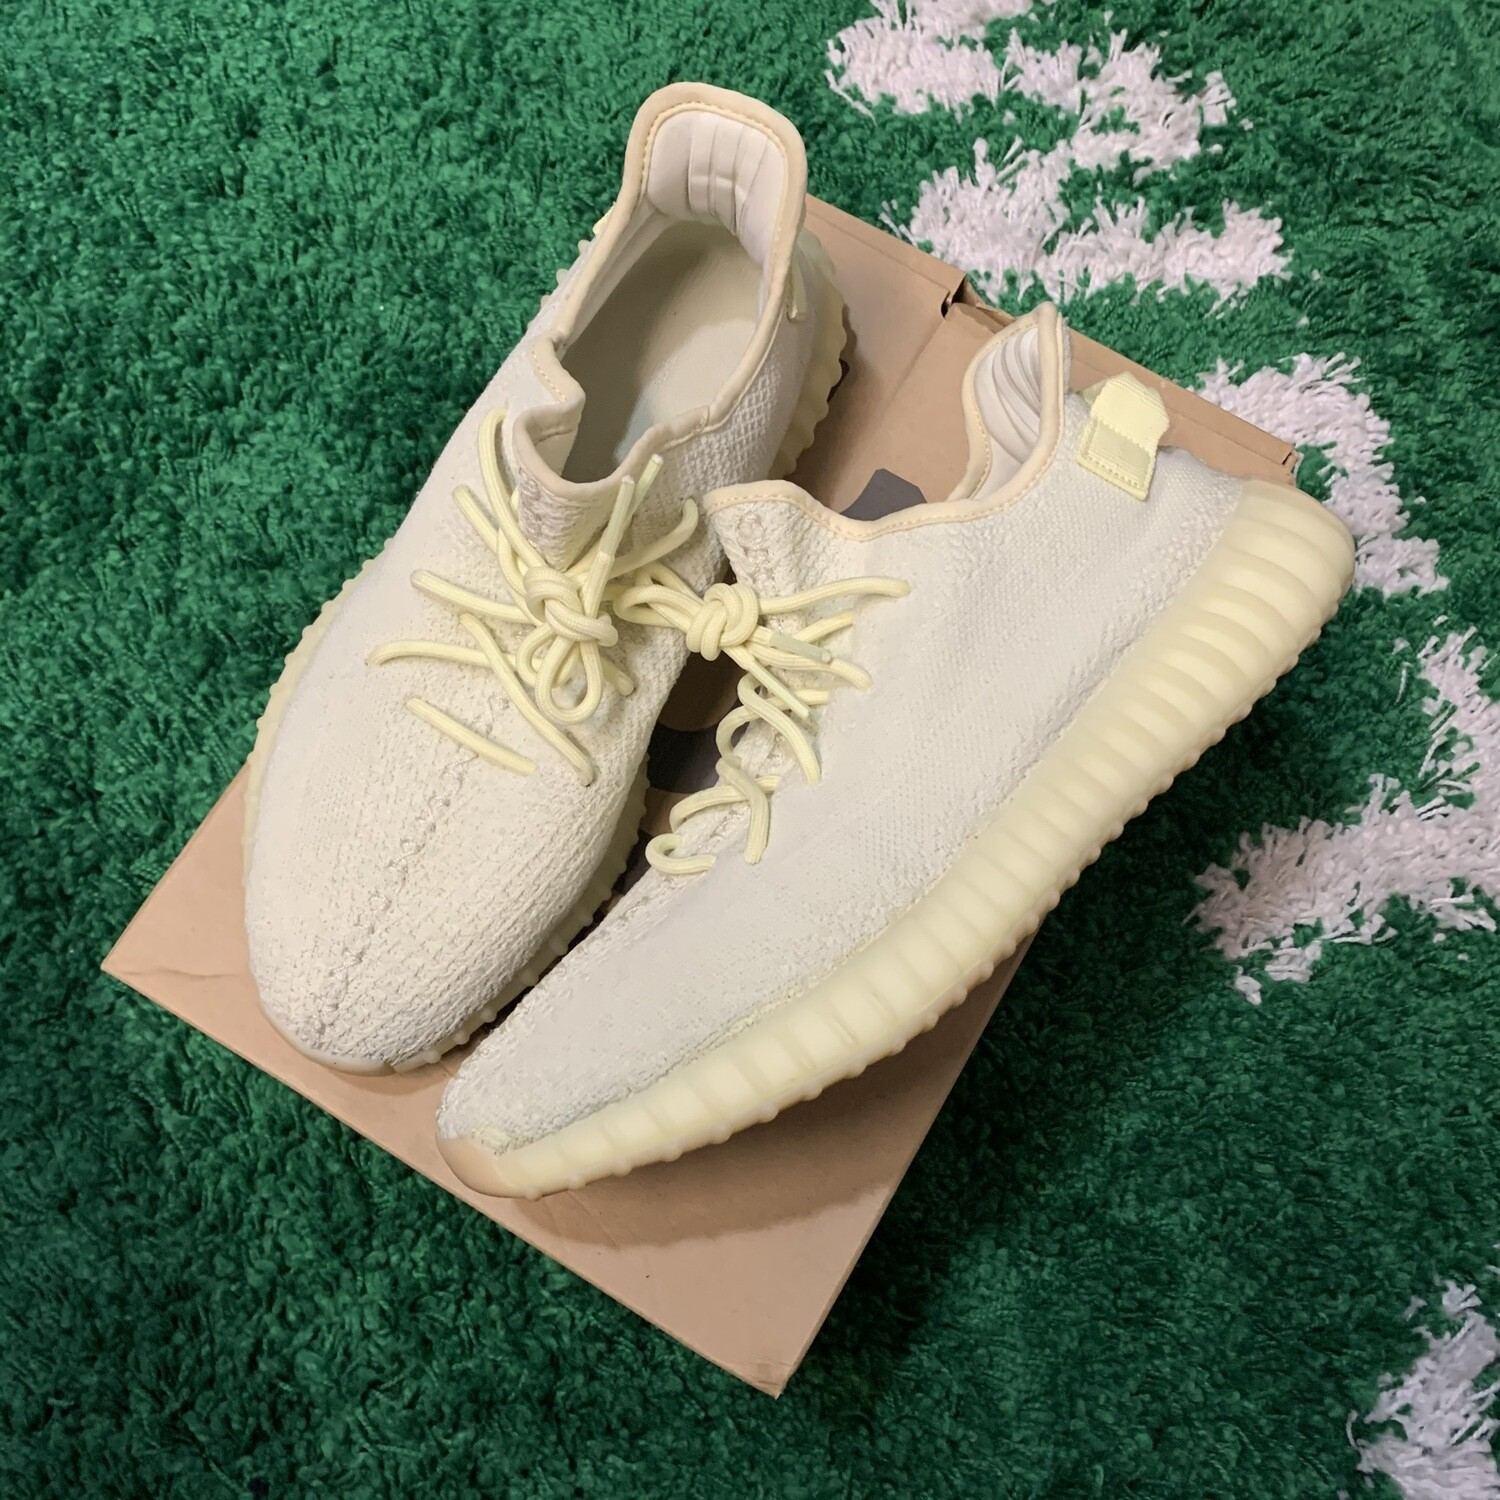 Adidas Yeezy Boost 350 v2 Butter Size 12